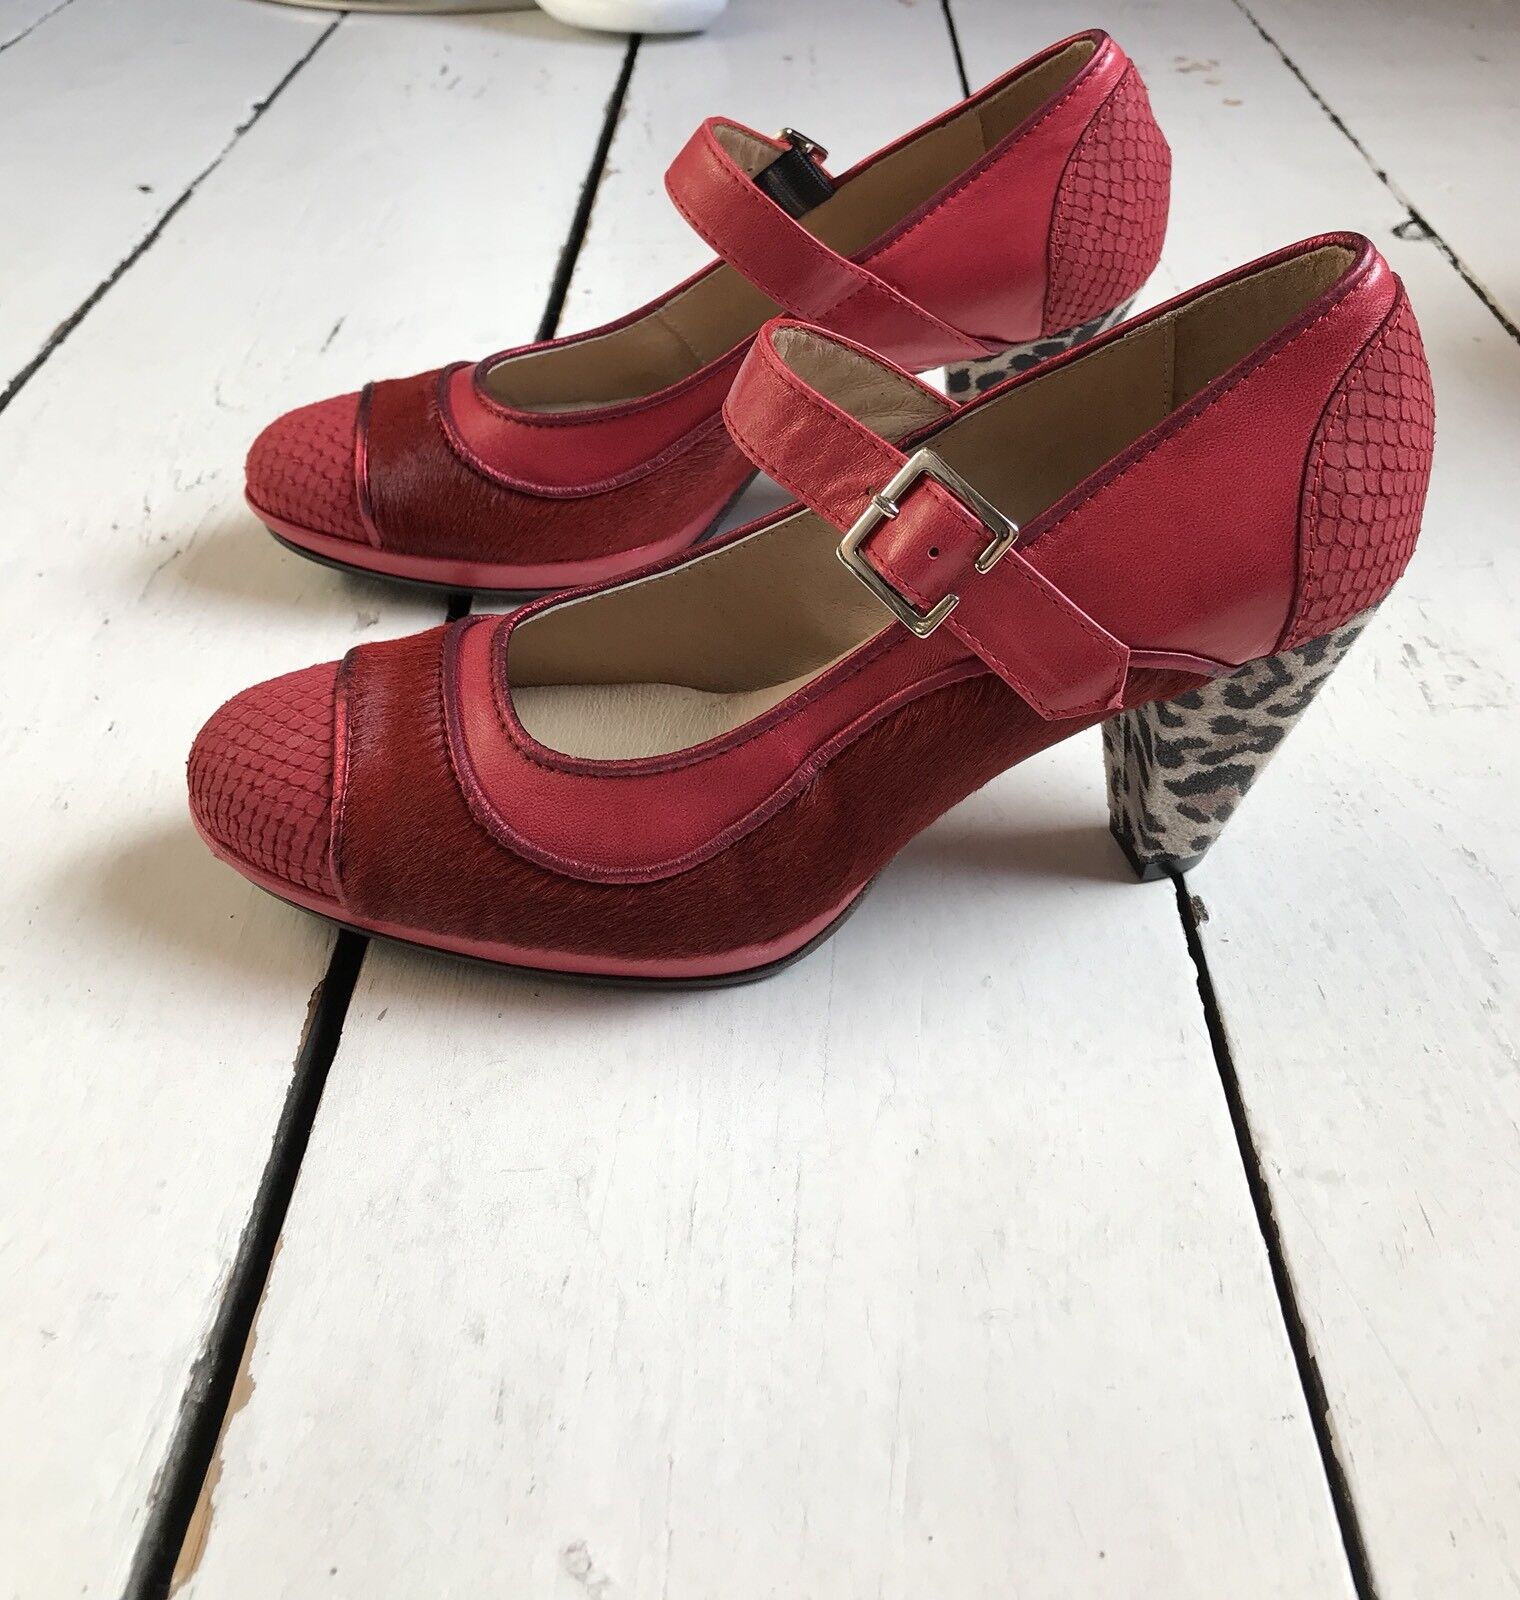 Eva & Claudi ROT Calf Hair Mary Jane Schuhes with 38 Leopard Print Heel EU 38 with UK 5 022229